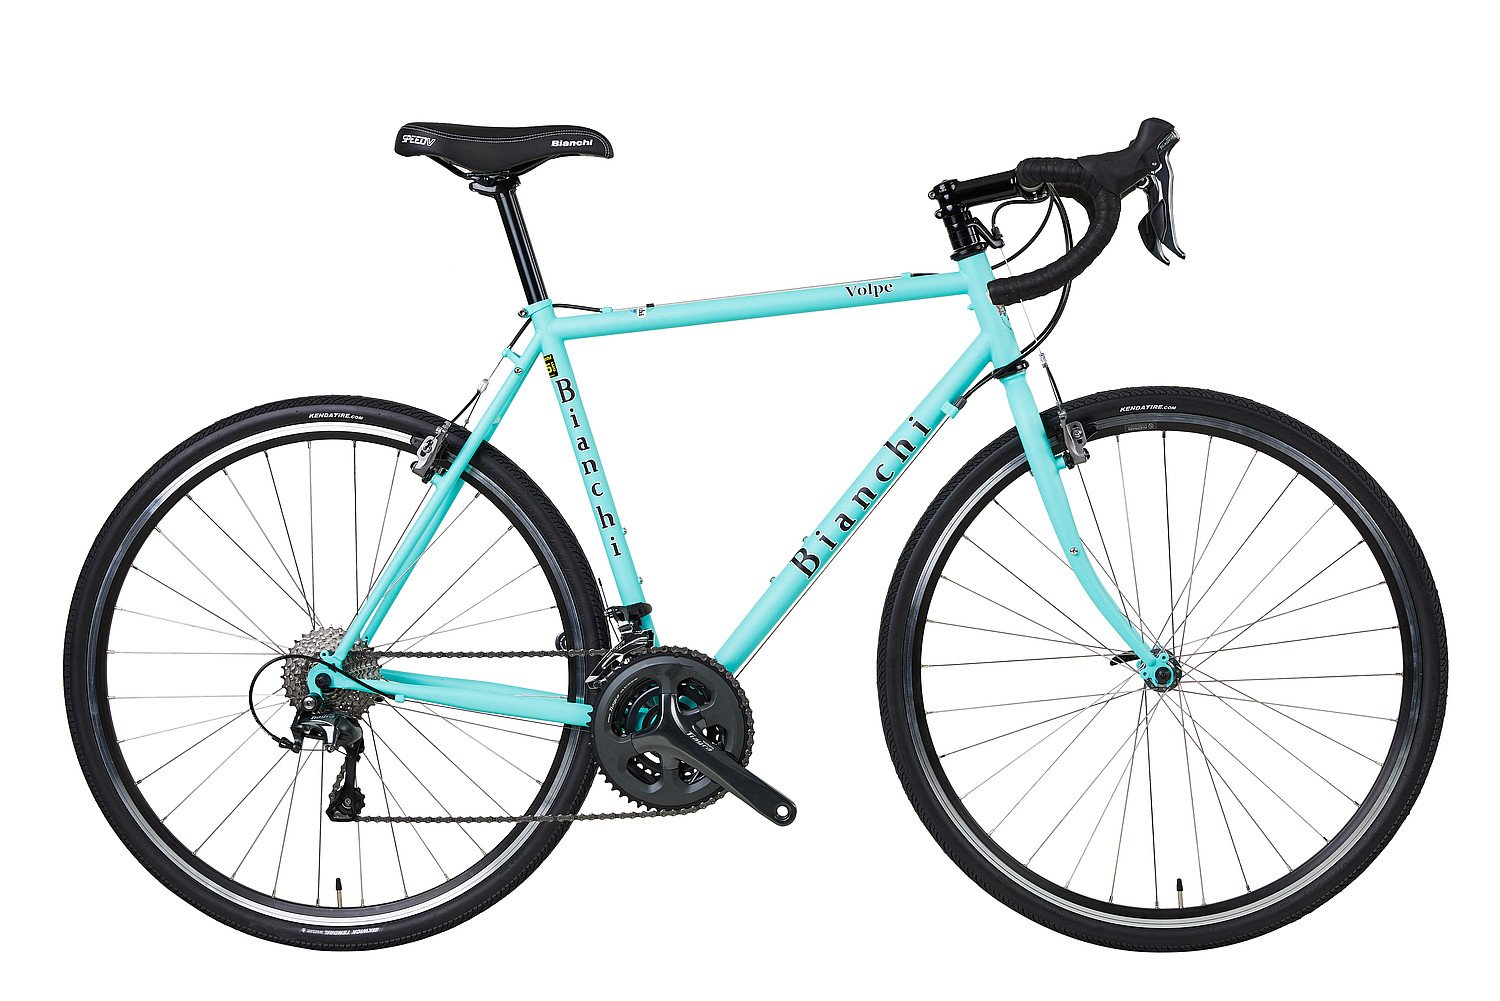 Bianchi Volpe Clsc 53 Matte Cel